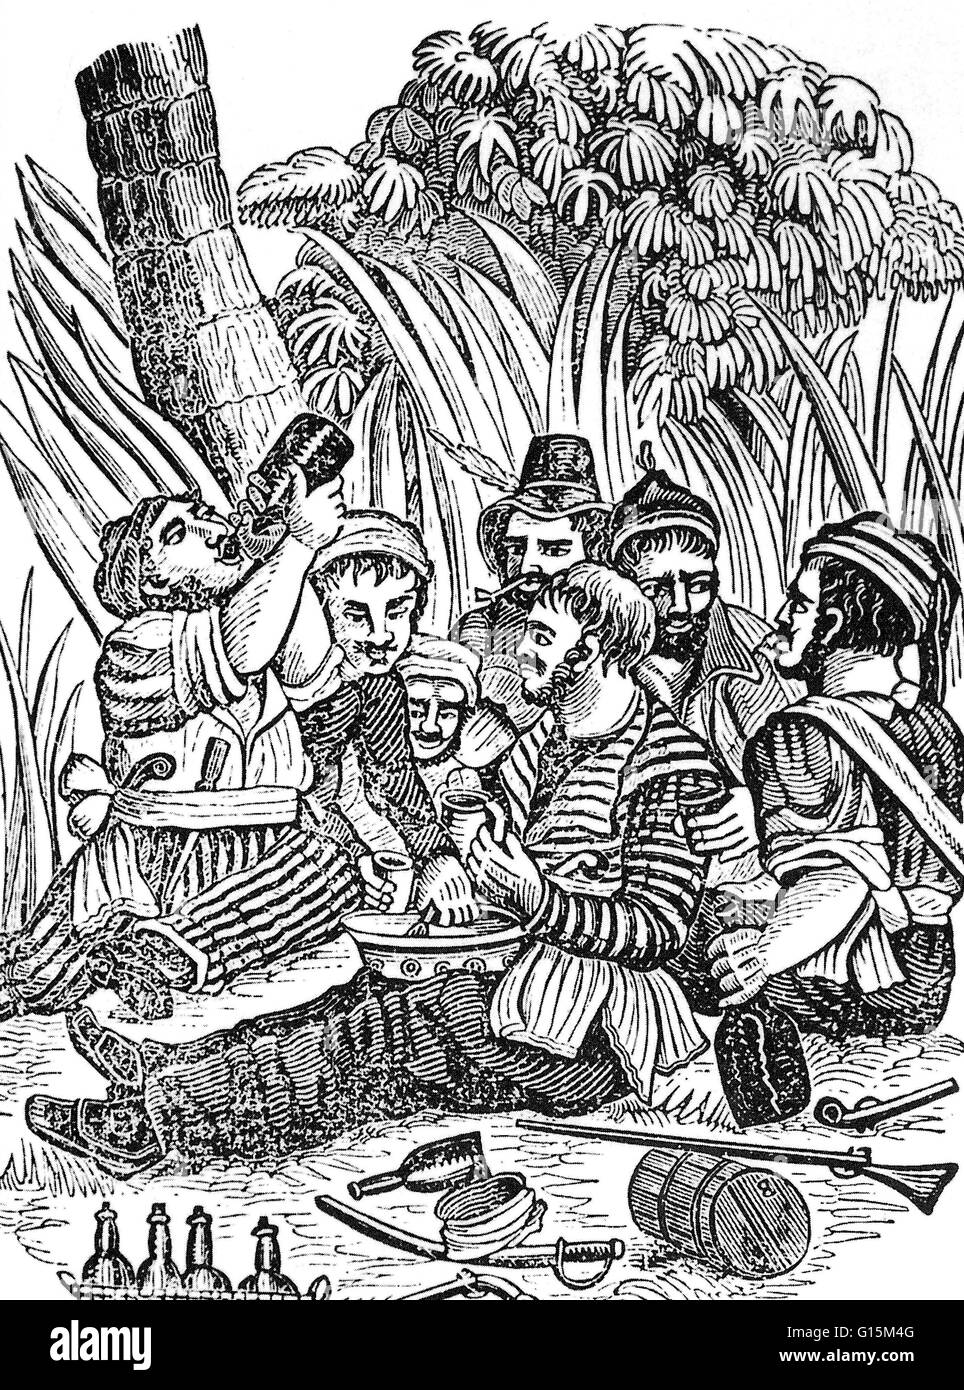 Bartholomew Roberts' crew drinking rum at the Calabar River in West Africa. Bartholomew Roberts (1682-1722) - Stock Image